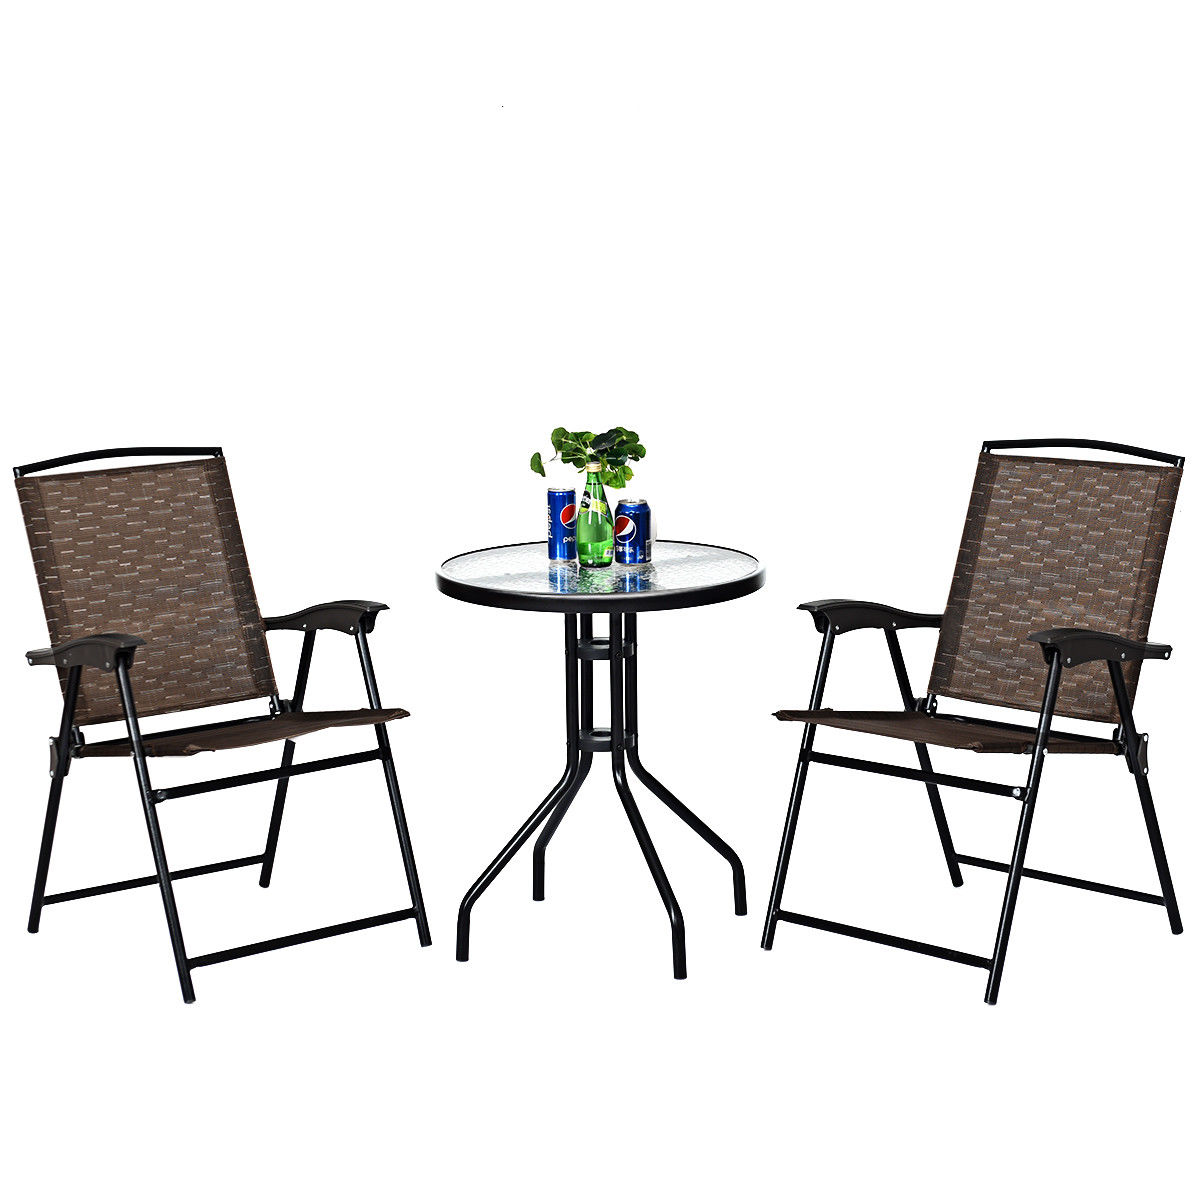 Costway 3PC Bistro Patio Garden Furniture Set 2 Folding Chairs Glass Table Top Steel